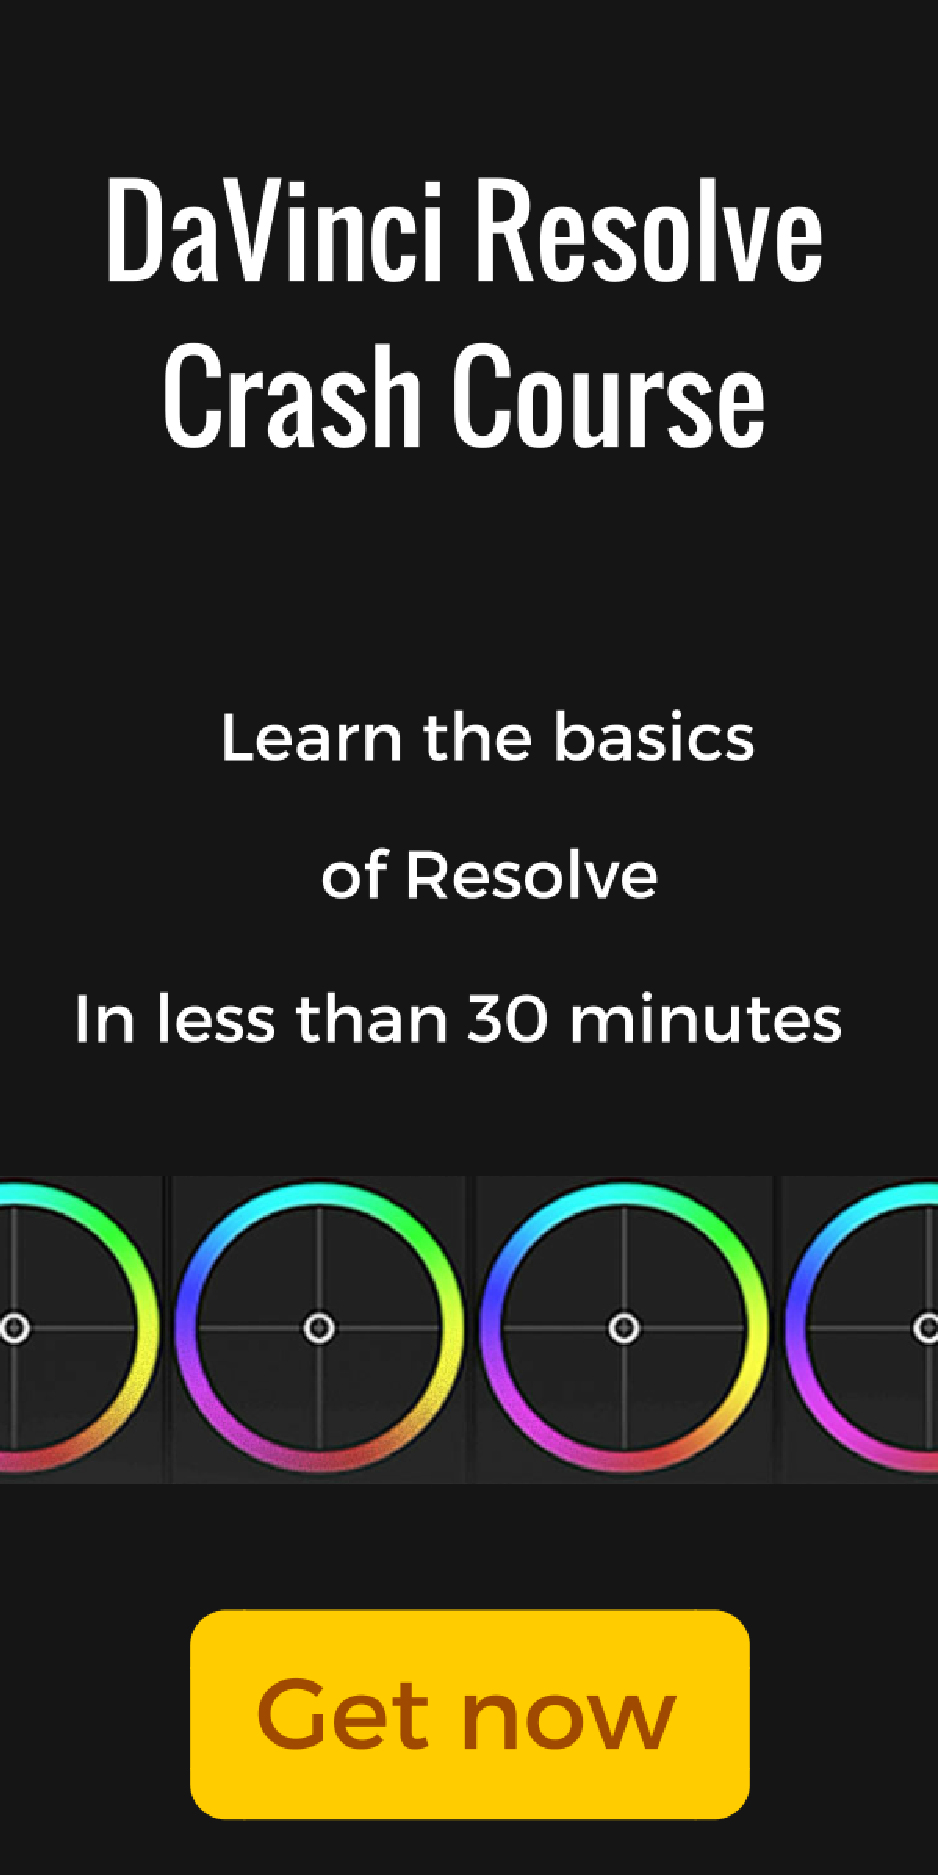 Davinci Resolve crash course